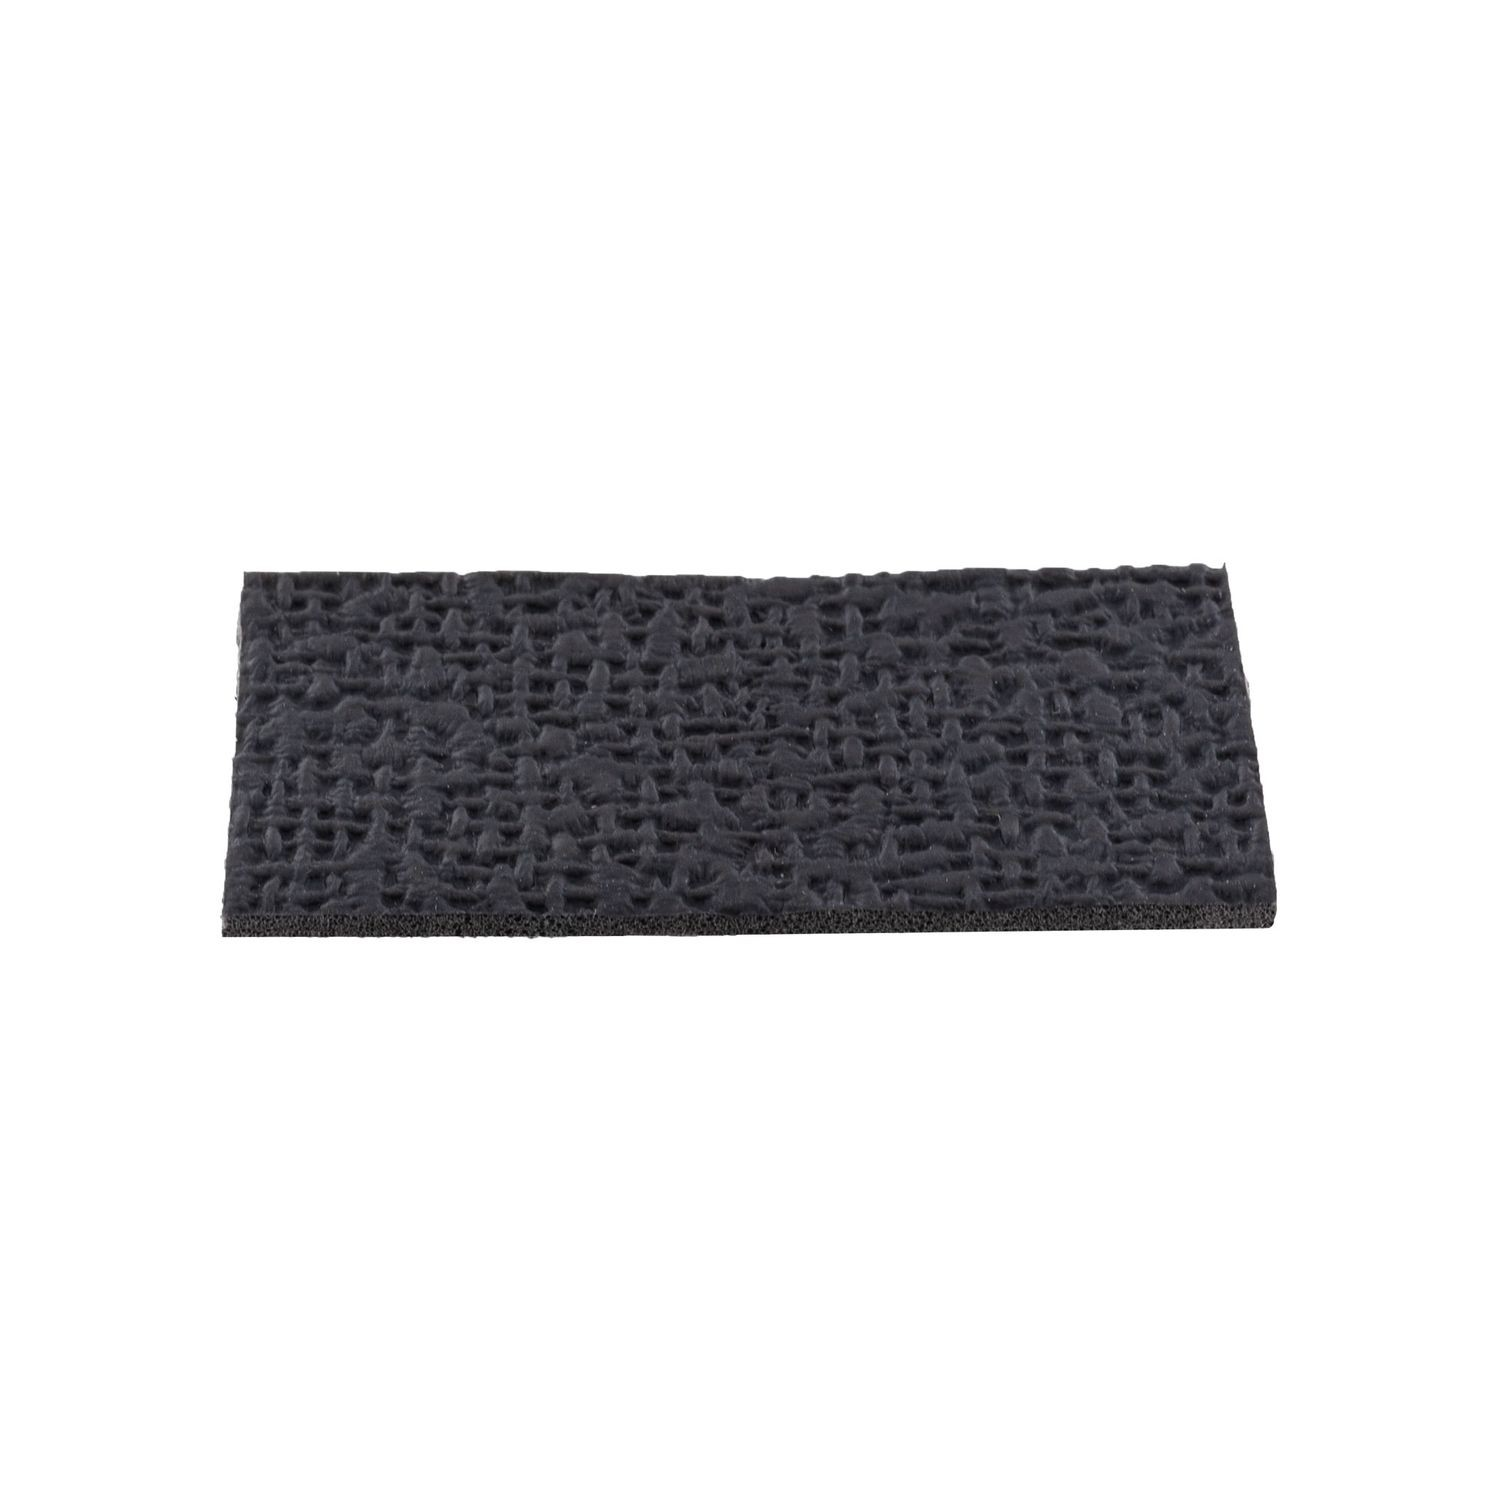 "1"" High x 2"" Wide x 1/16"" Thick Embossed Black Thermoplastic Rubber Square Non-Skid Pad"